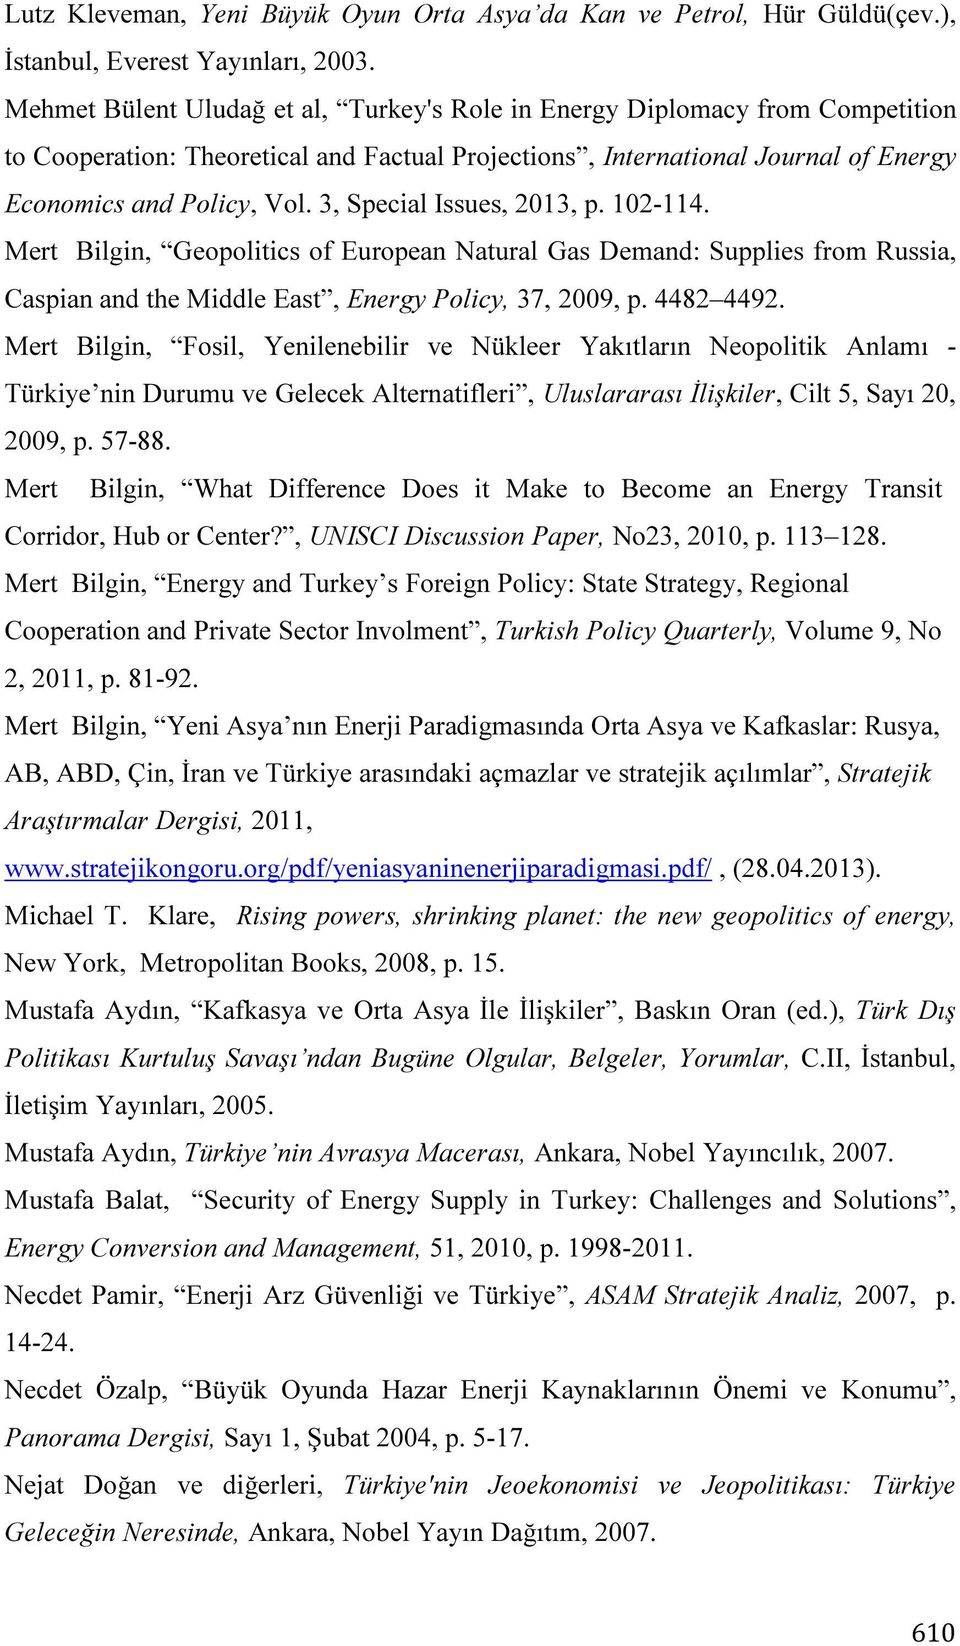 3, Special Issues, 2013, p. 102-114. Mert Bilgin, Geopolitics of European Natural Gas Demand: Supplies from Russia, Caspian and the Middle East, Energy Policy, 37, 2009, p. 4482 4492.